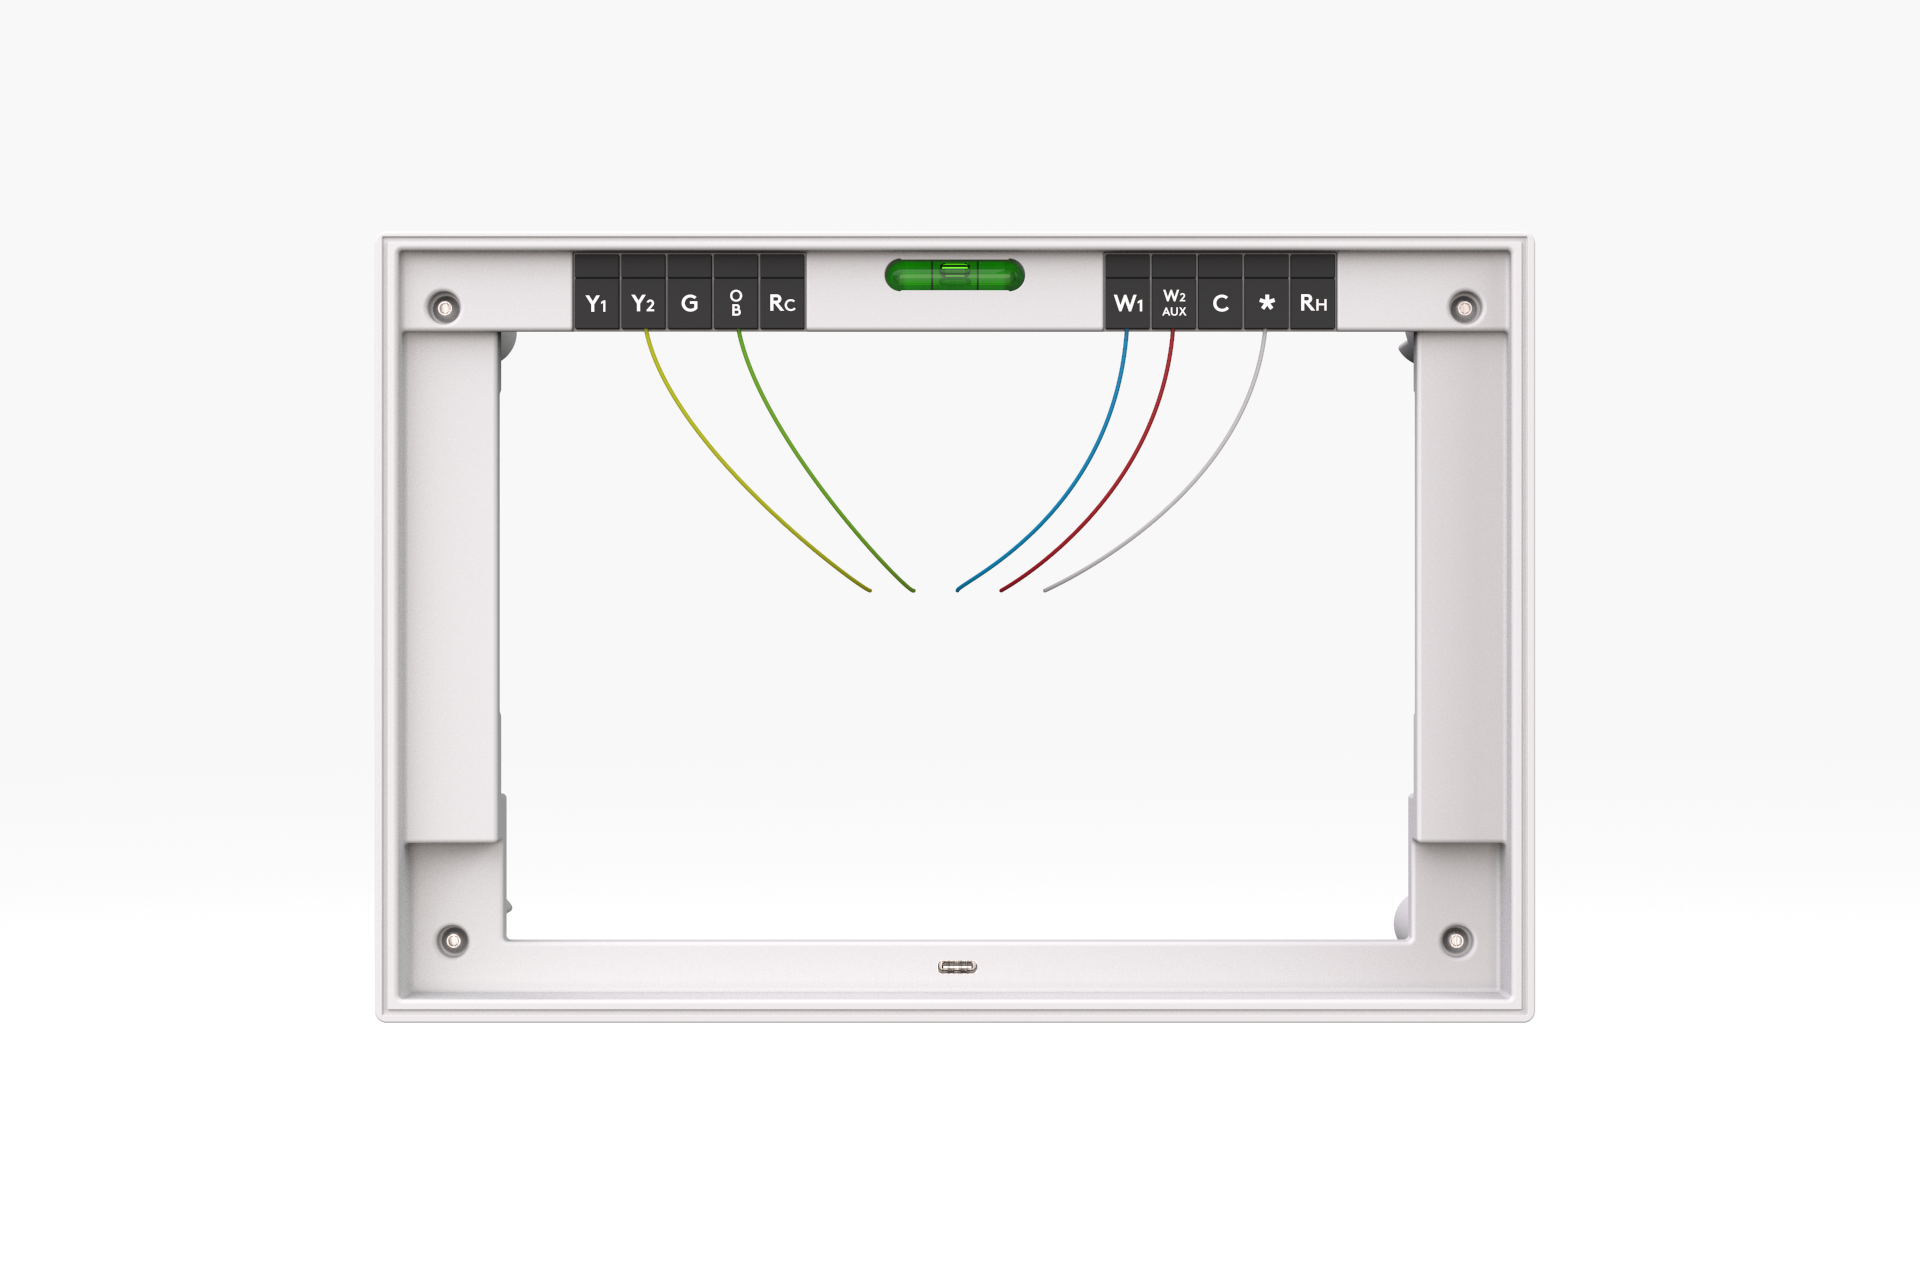 Thermostat Wire Clips - The device is powered using existing thermostat wiring, allowing for easy installation and no extra wiring. The labels on the clips ensure the wires are installed correctly. The level helps users ensure the back-plate is aligned properly during the installation process.